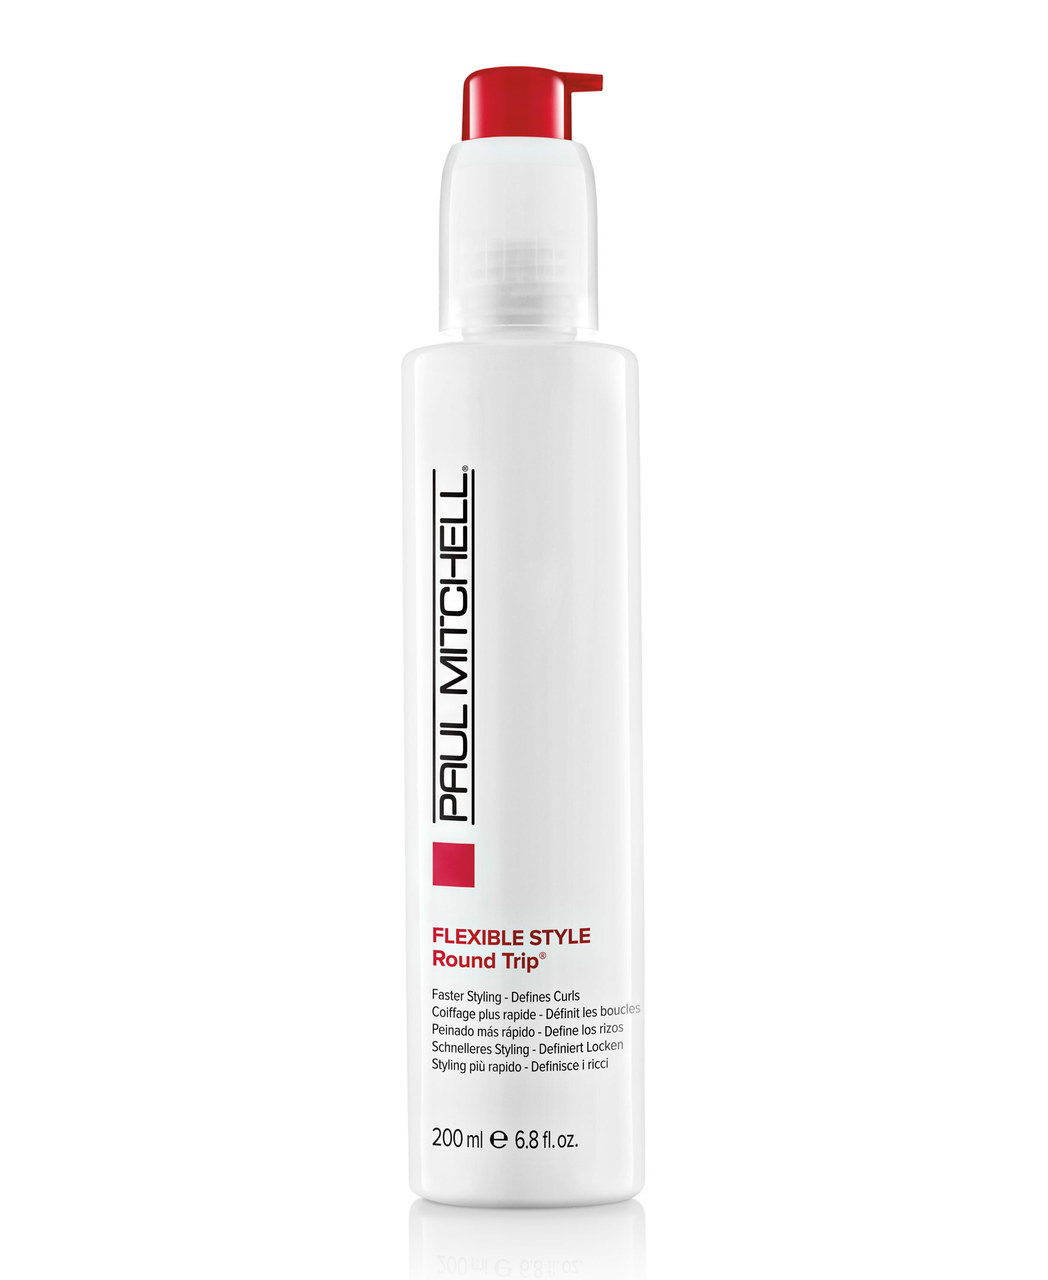 Paul Mitchell Flexible Style Round Trip, 200 ml